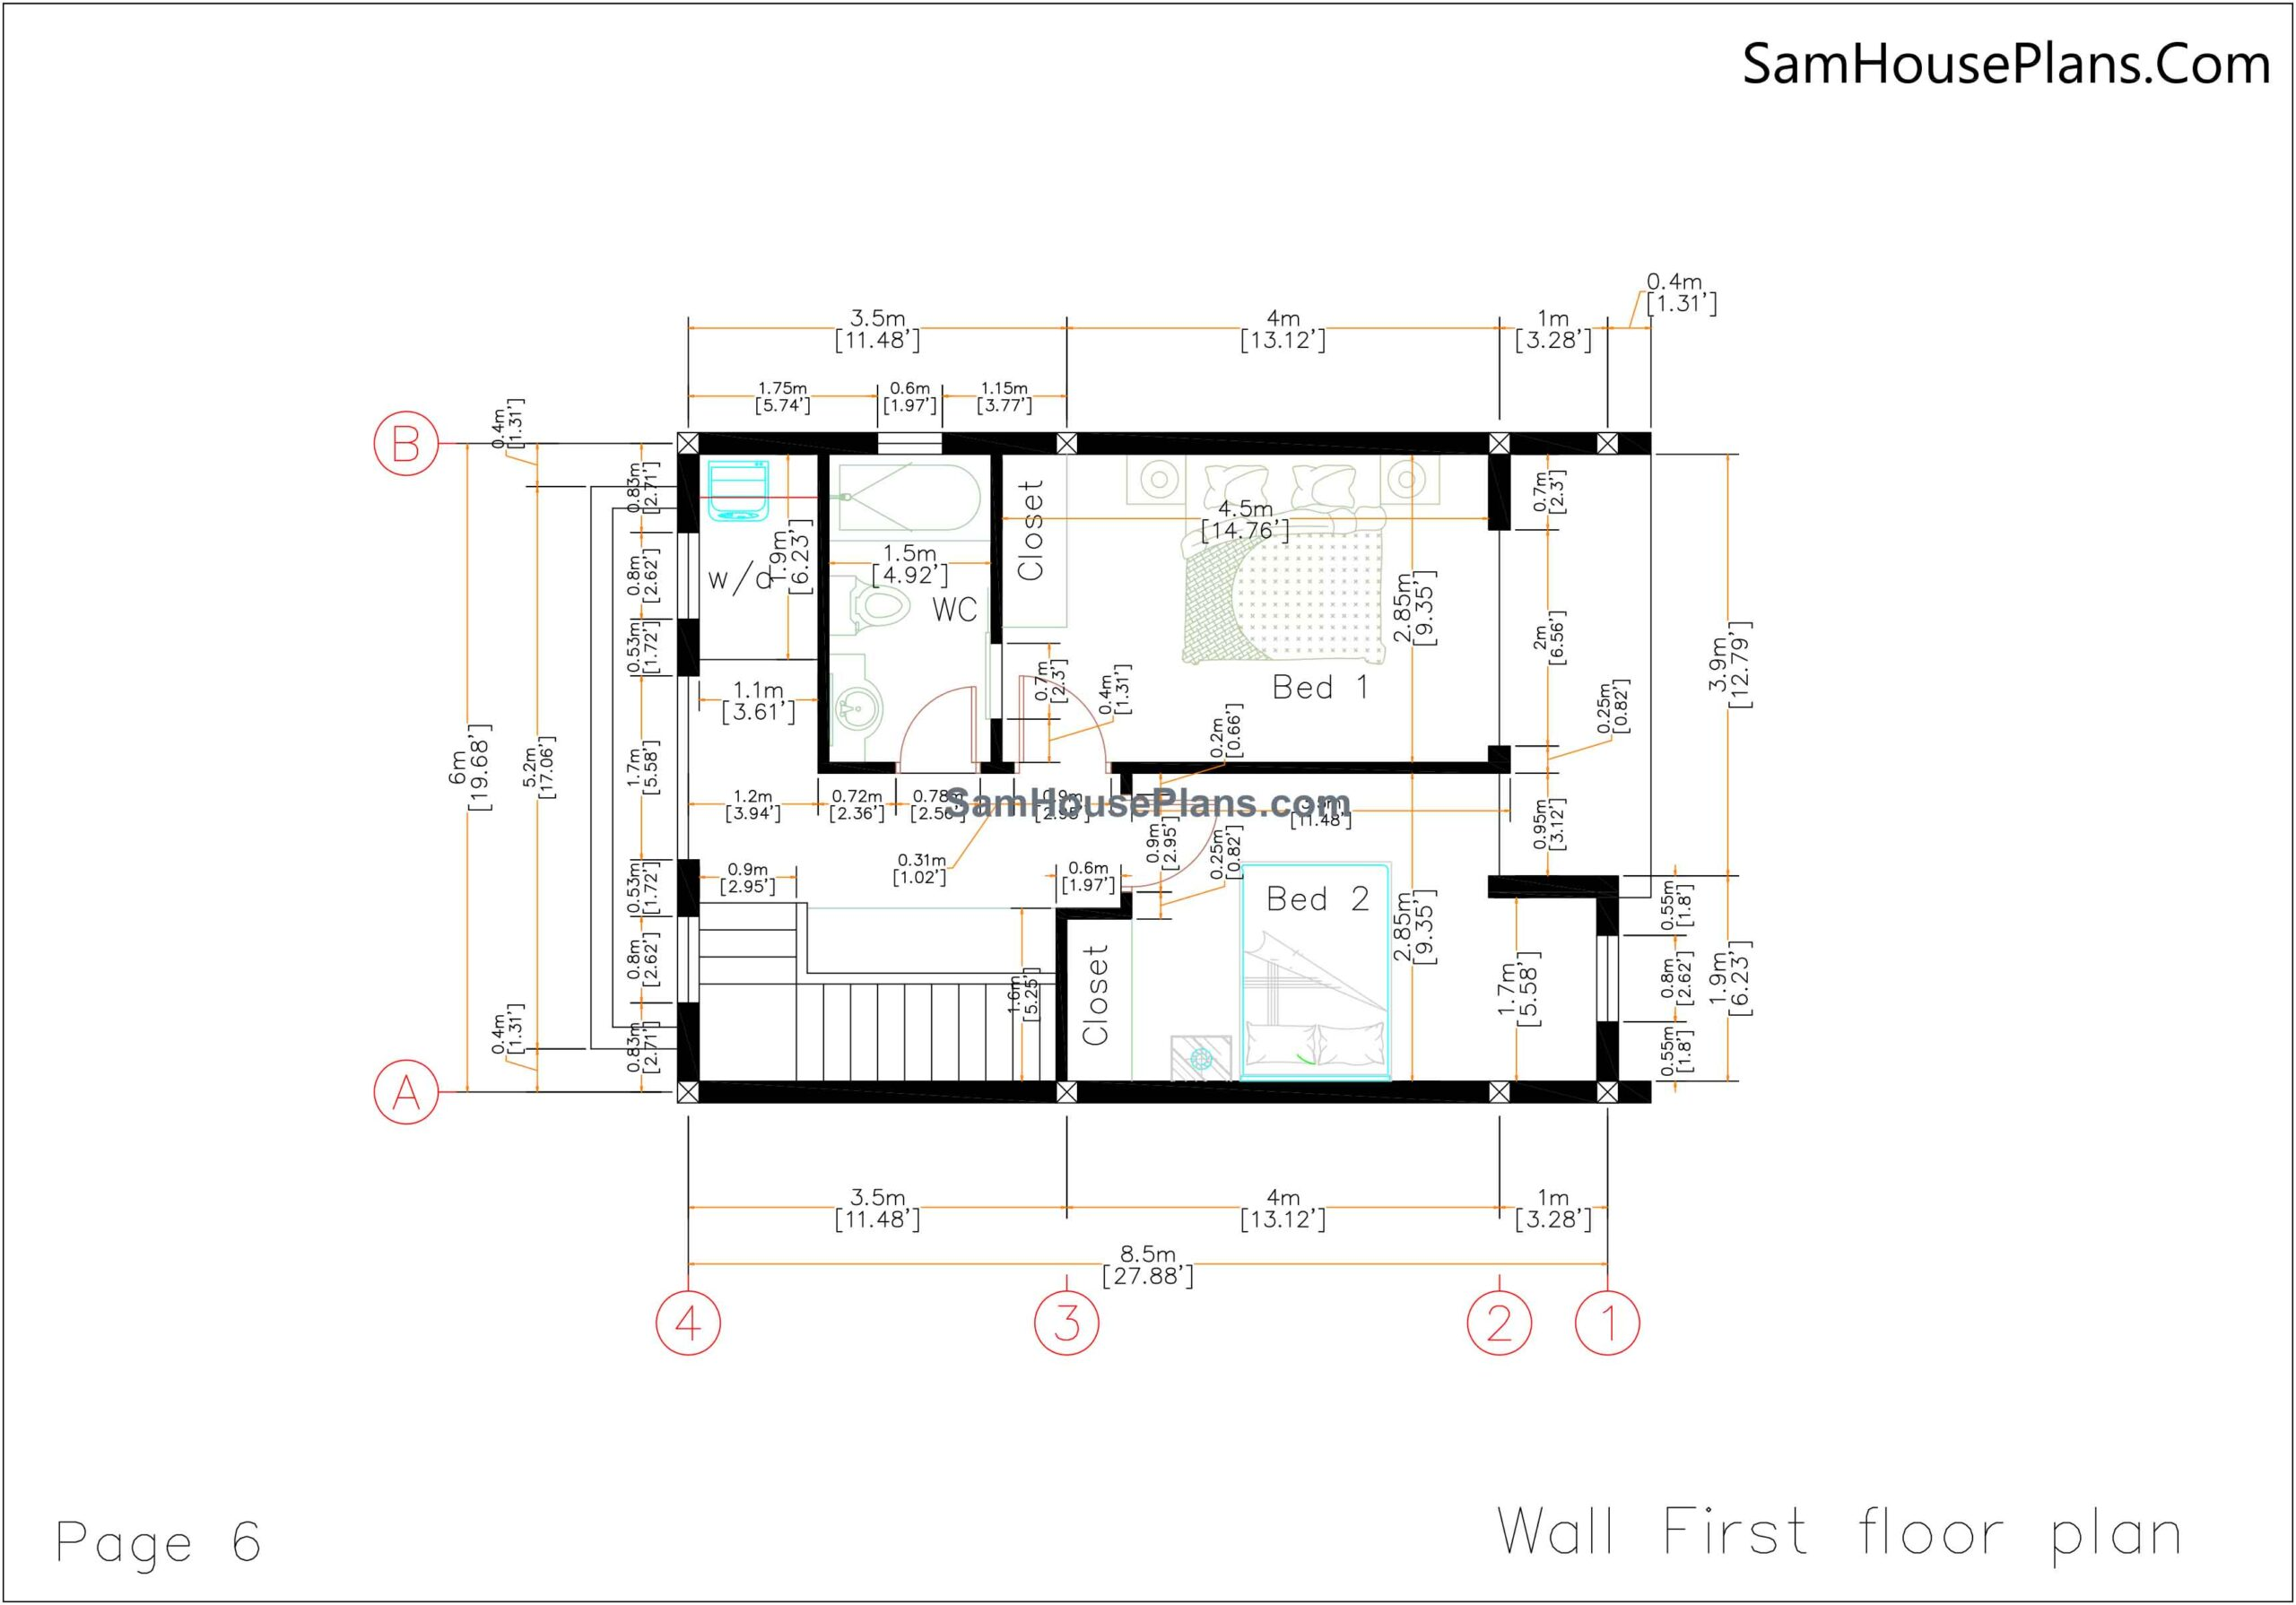 06 Wall First Floor Plan 20x30 Small House Plan 6x8.5m